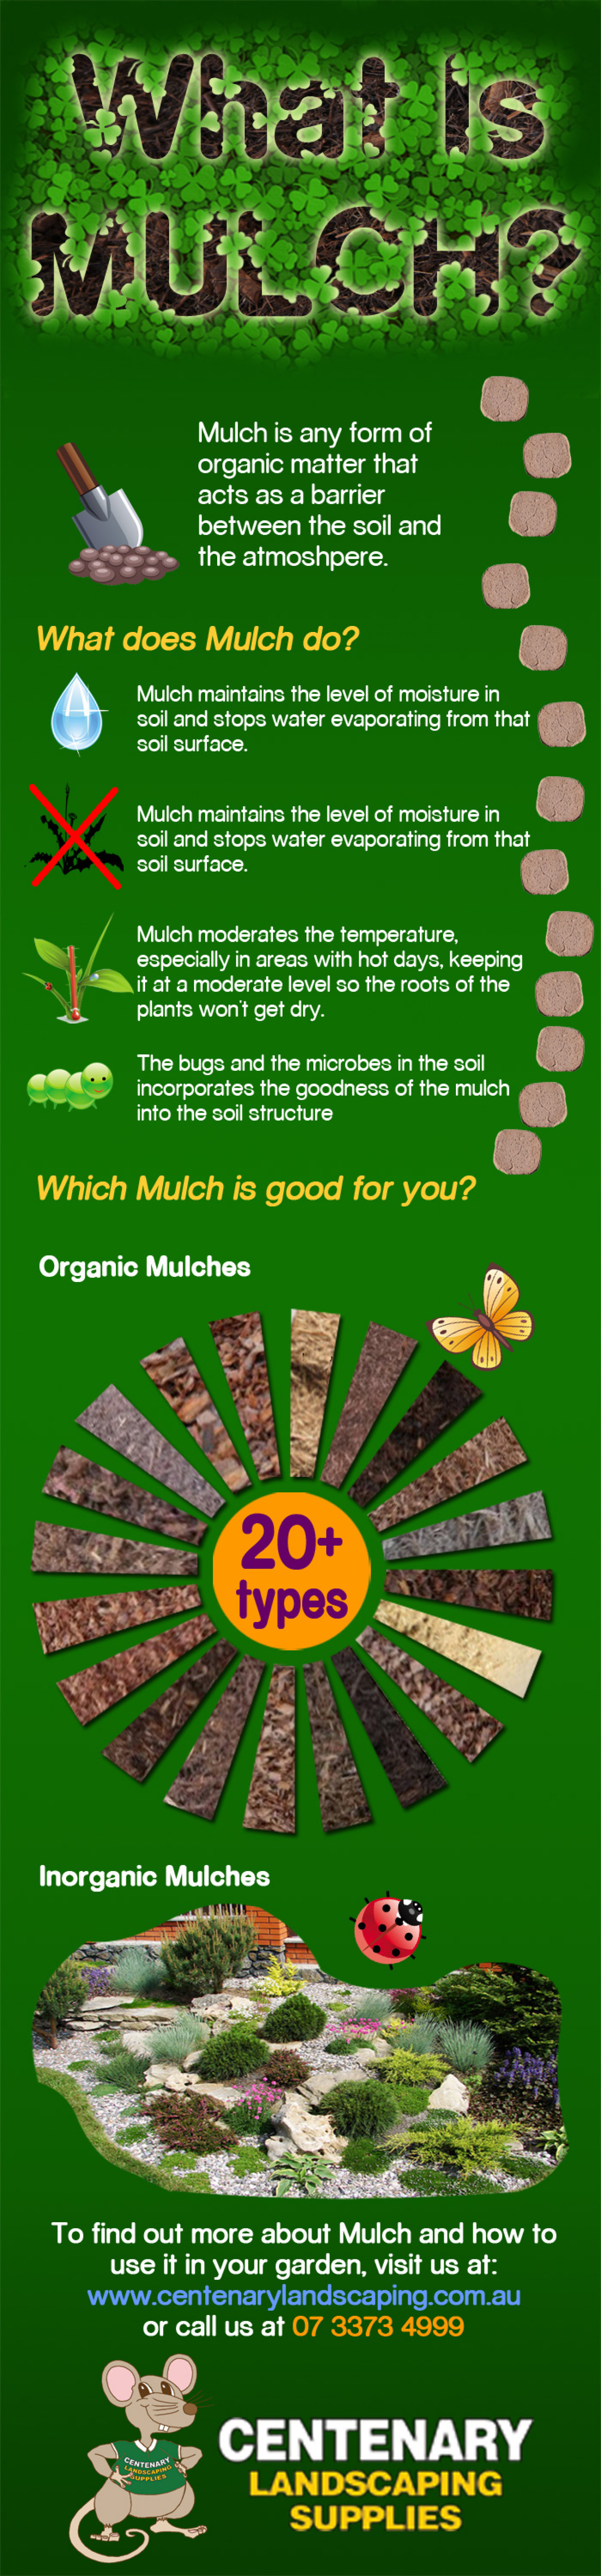 What Is Mulch? Infographic